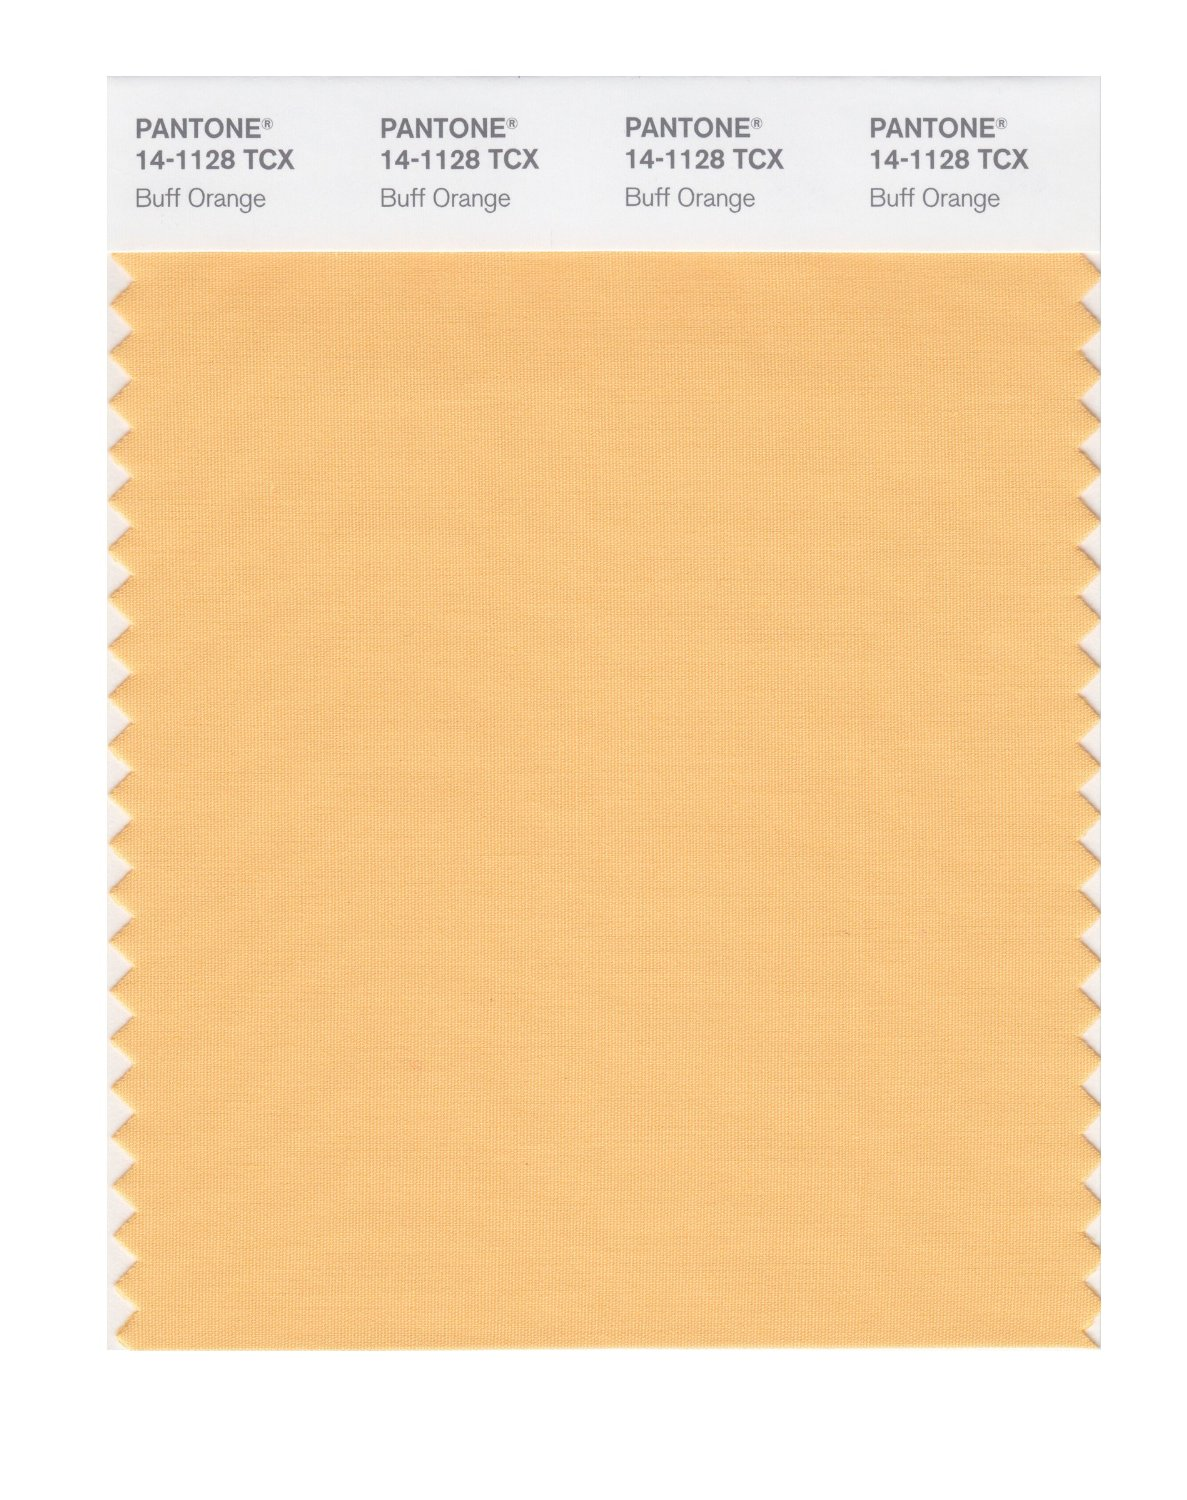 Pantone Smart Swatch 14-1128 Buff Orange